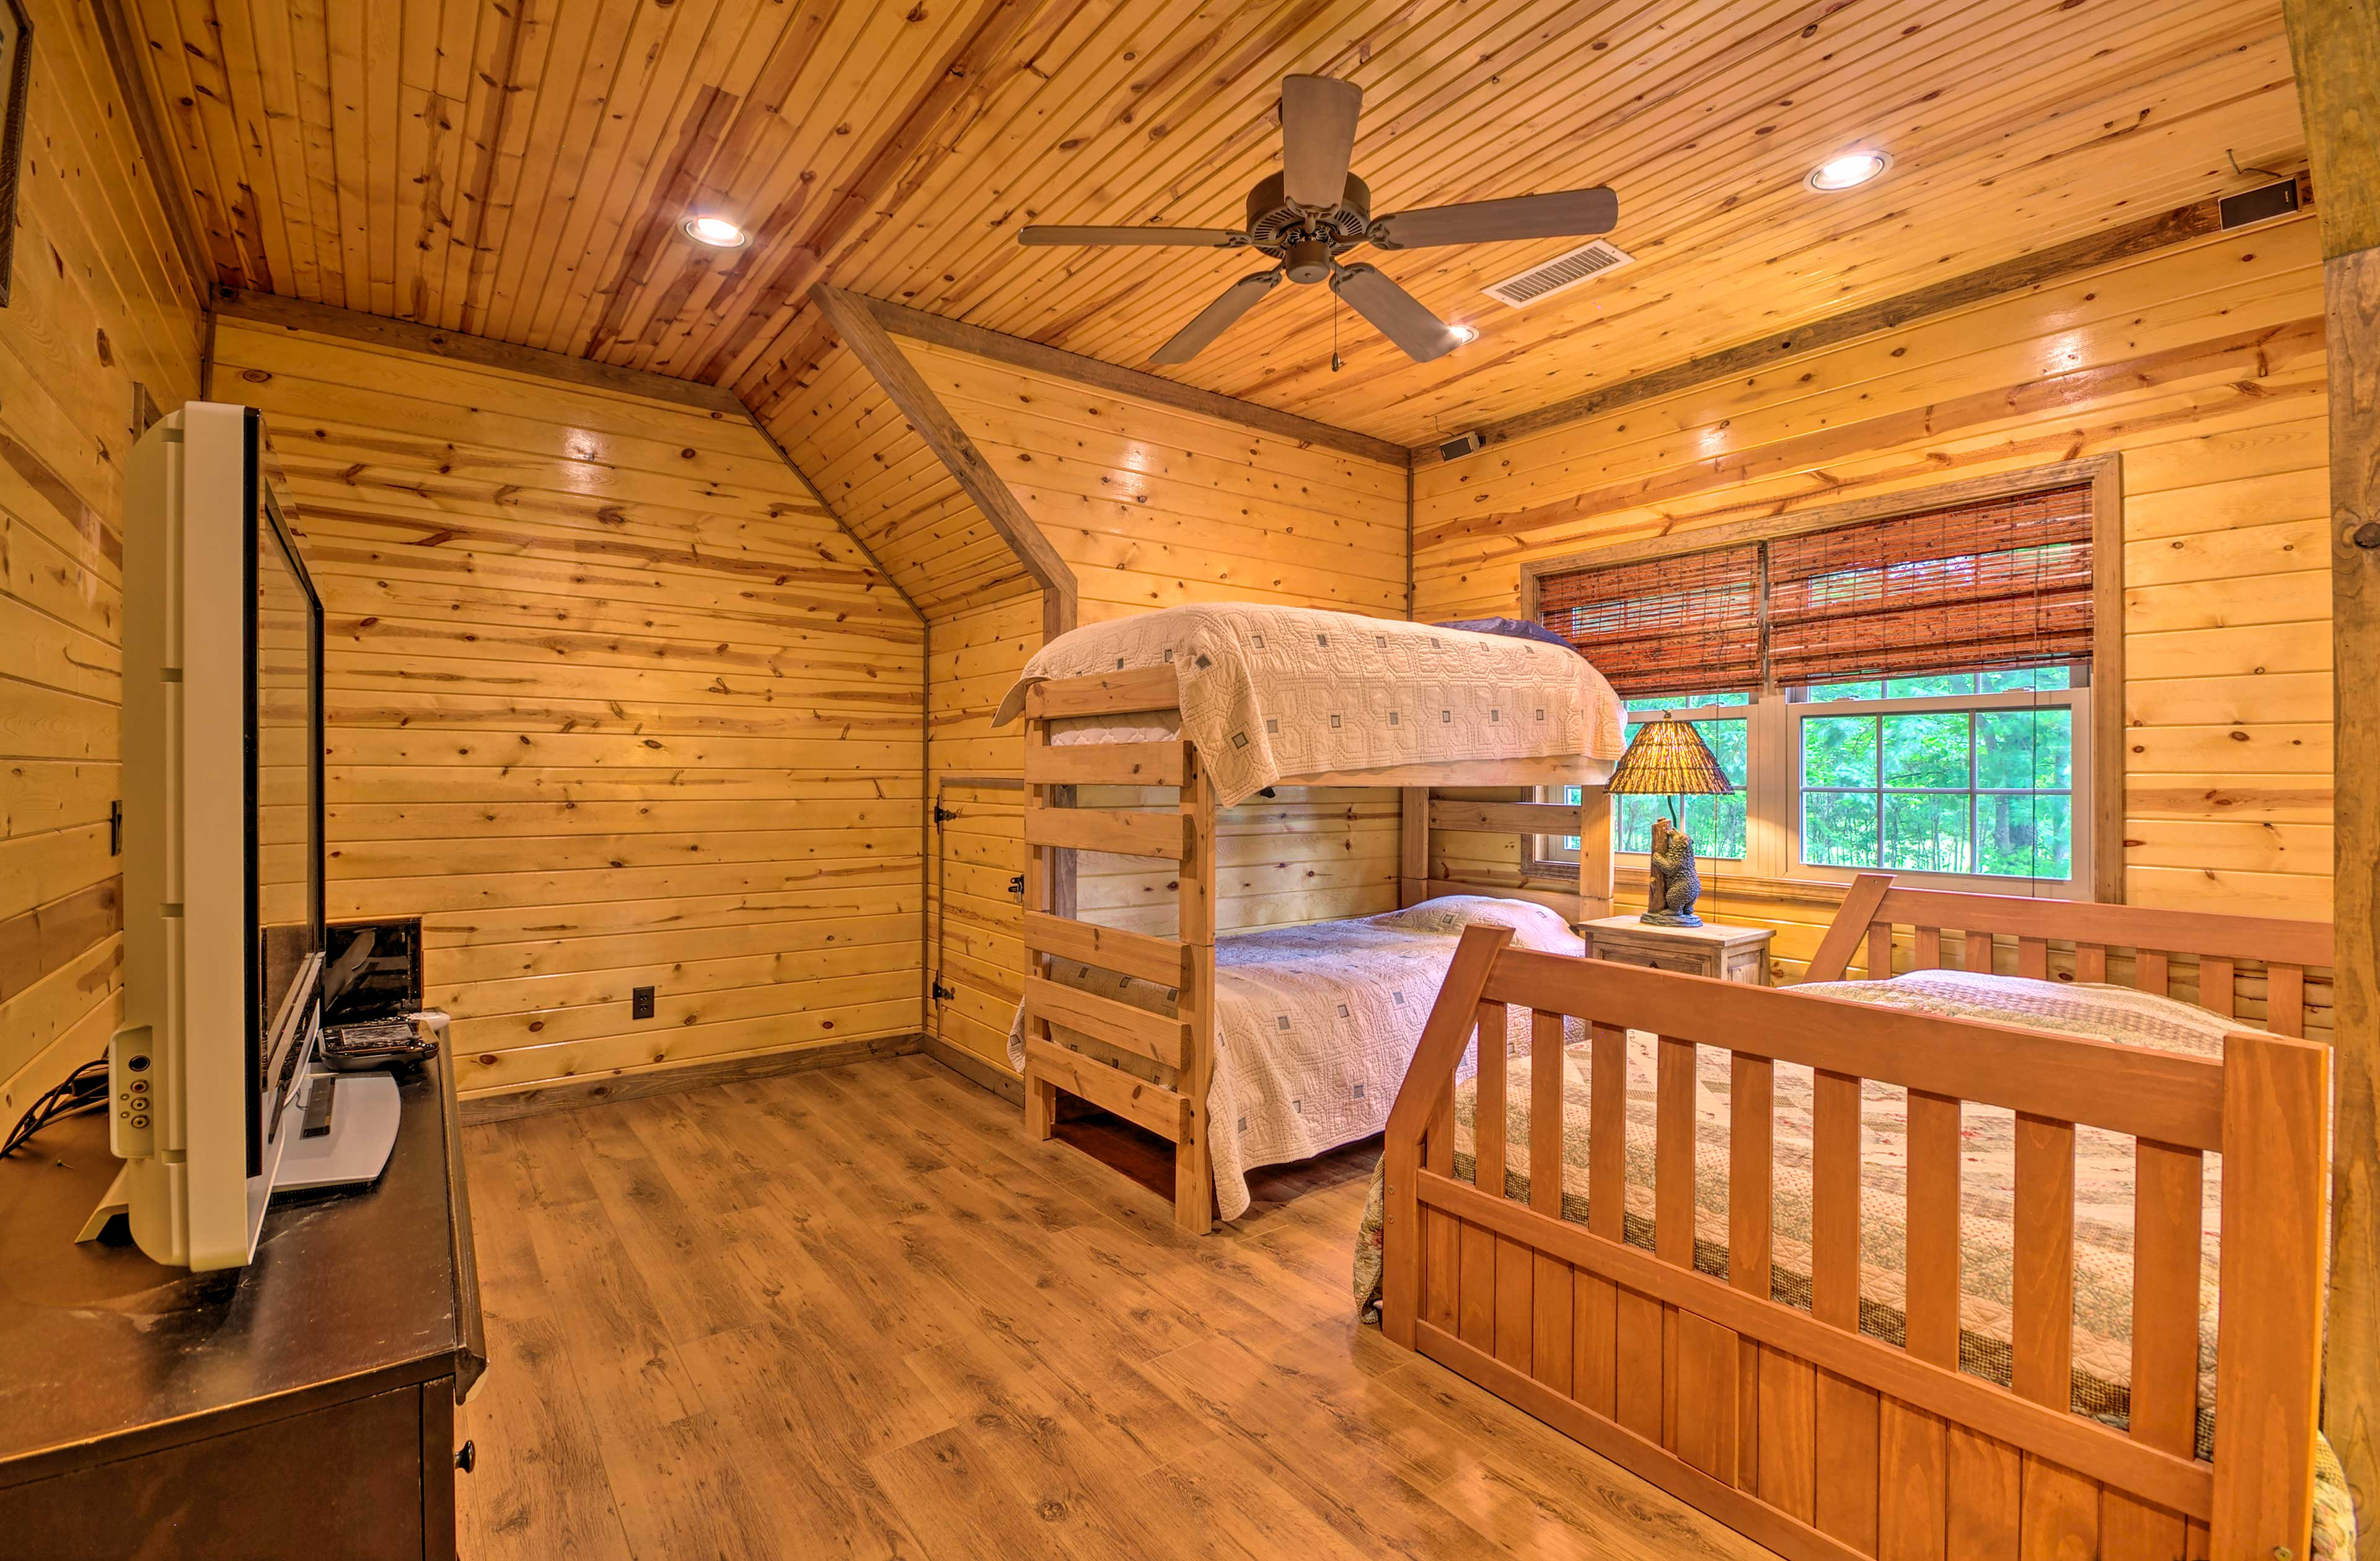 The second bedroom features a full bed and twin bunk beds.